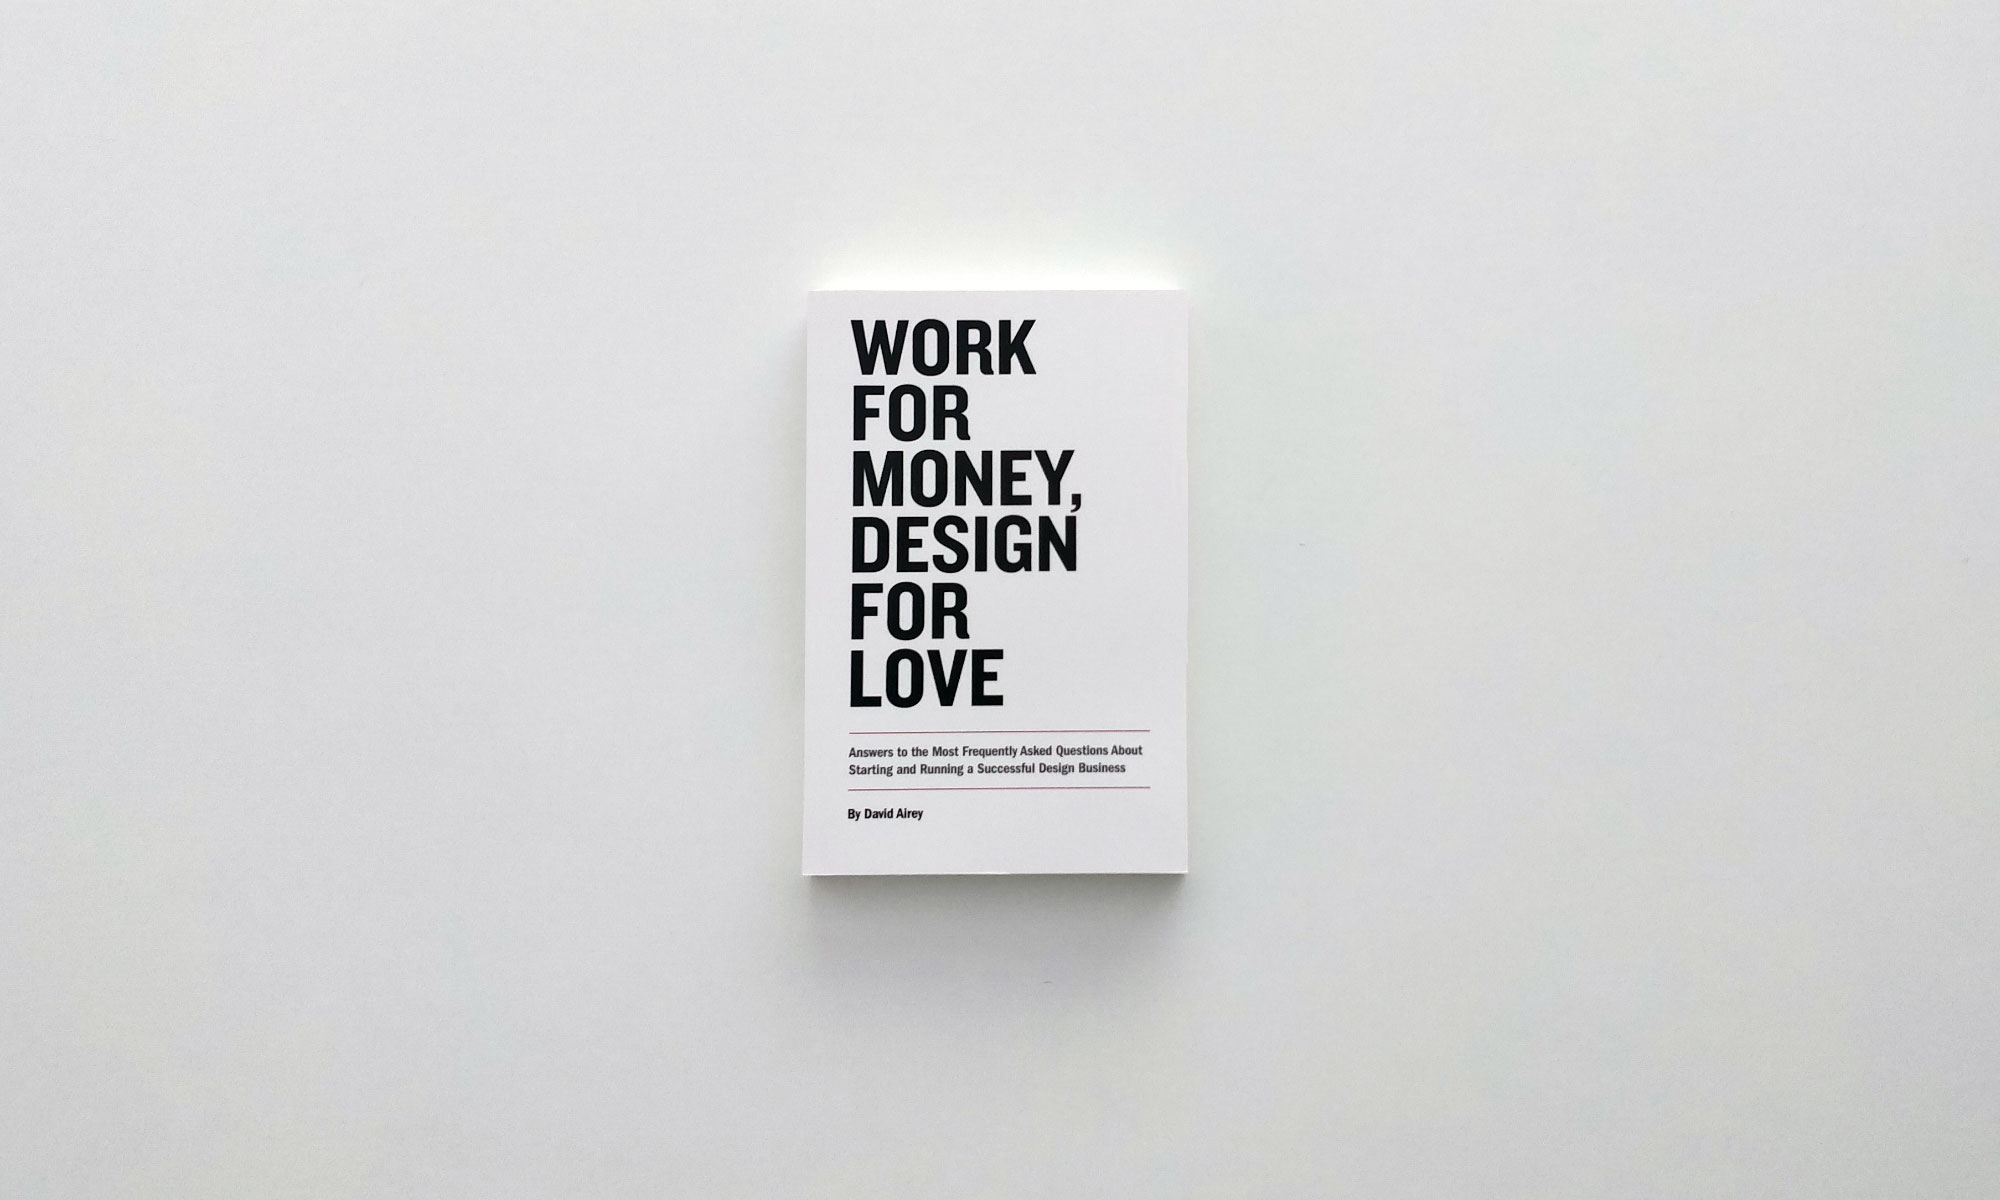 work for monay design for love